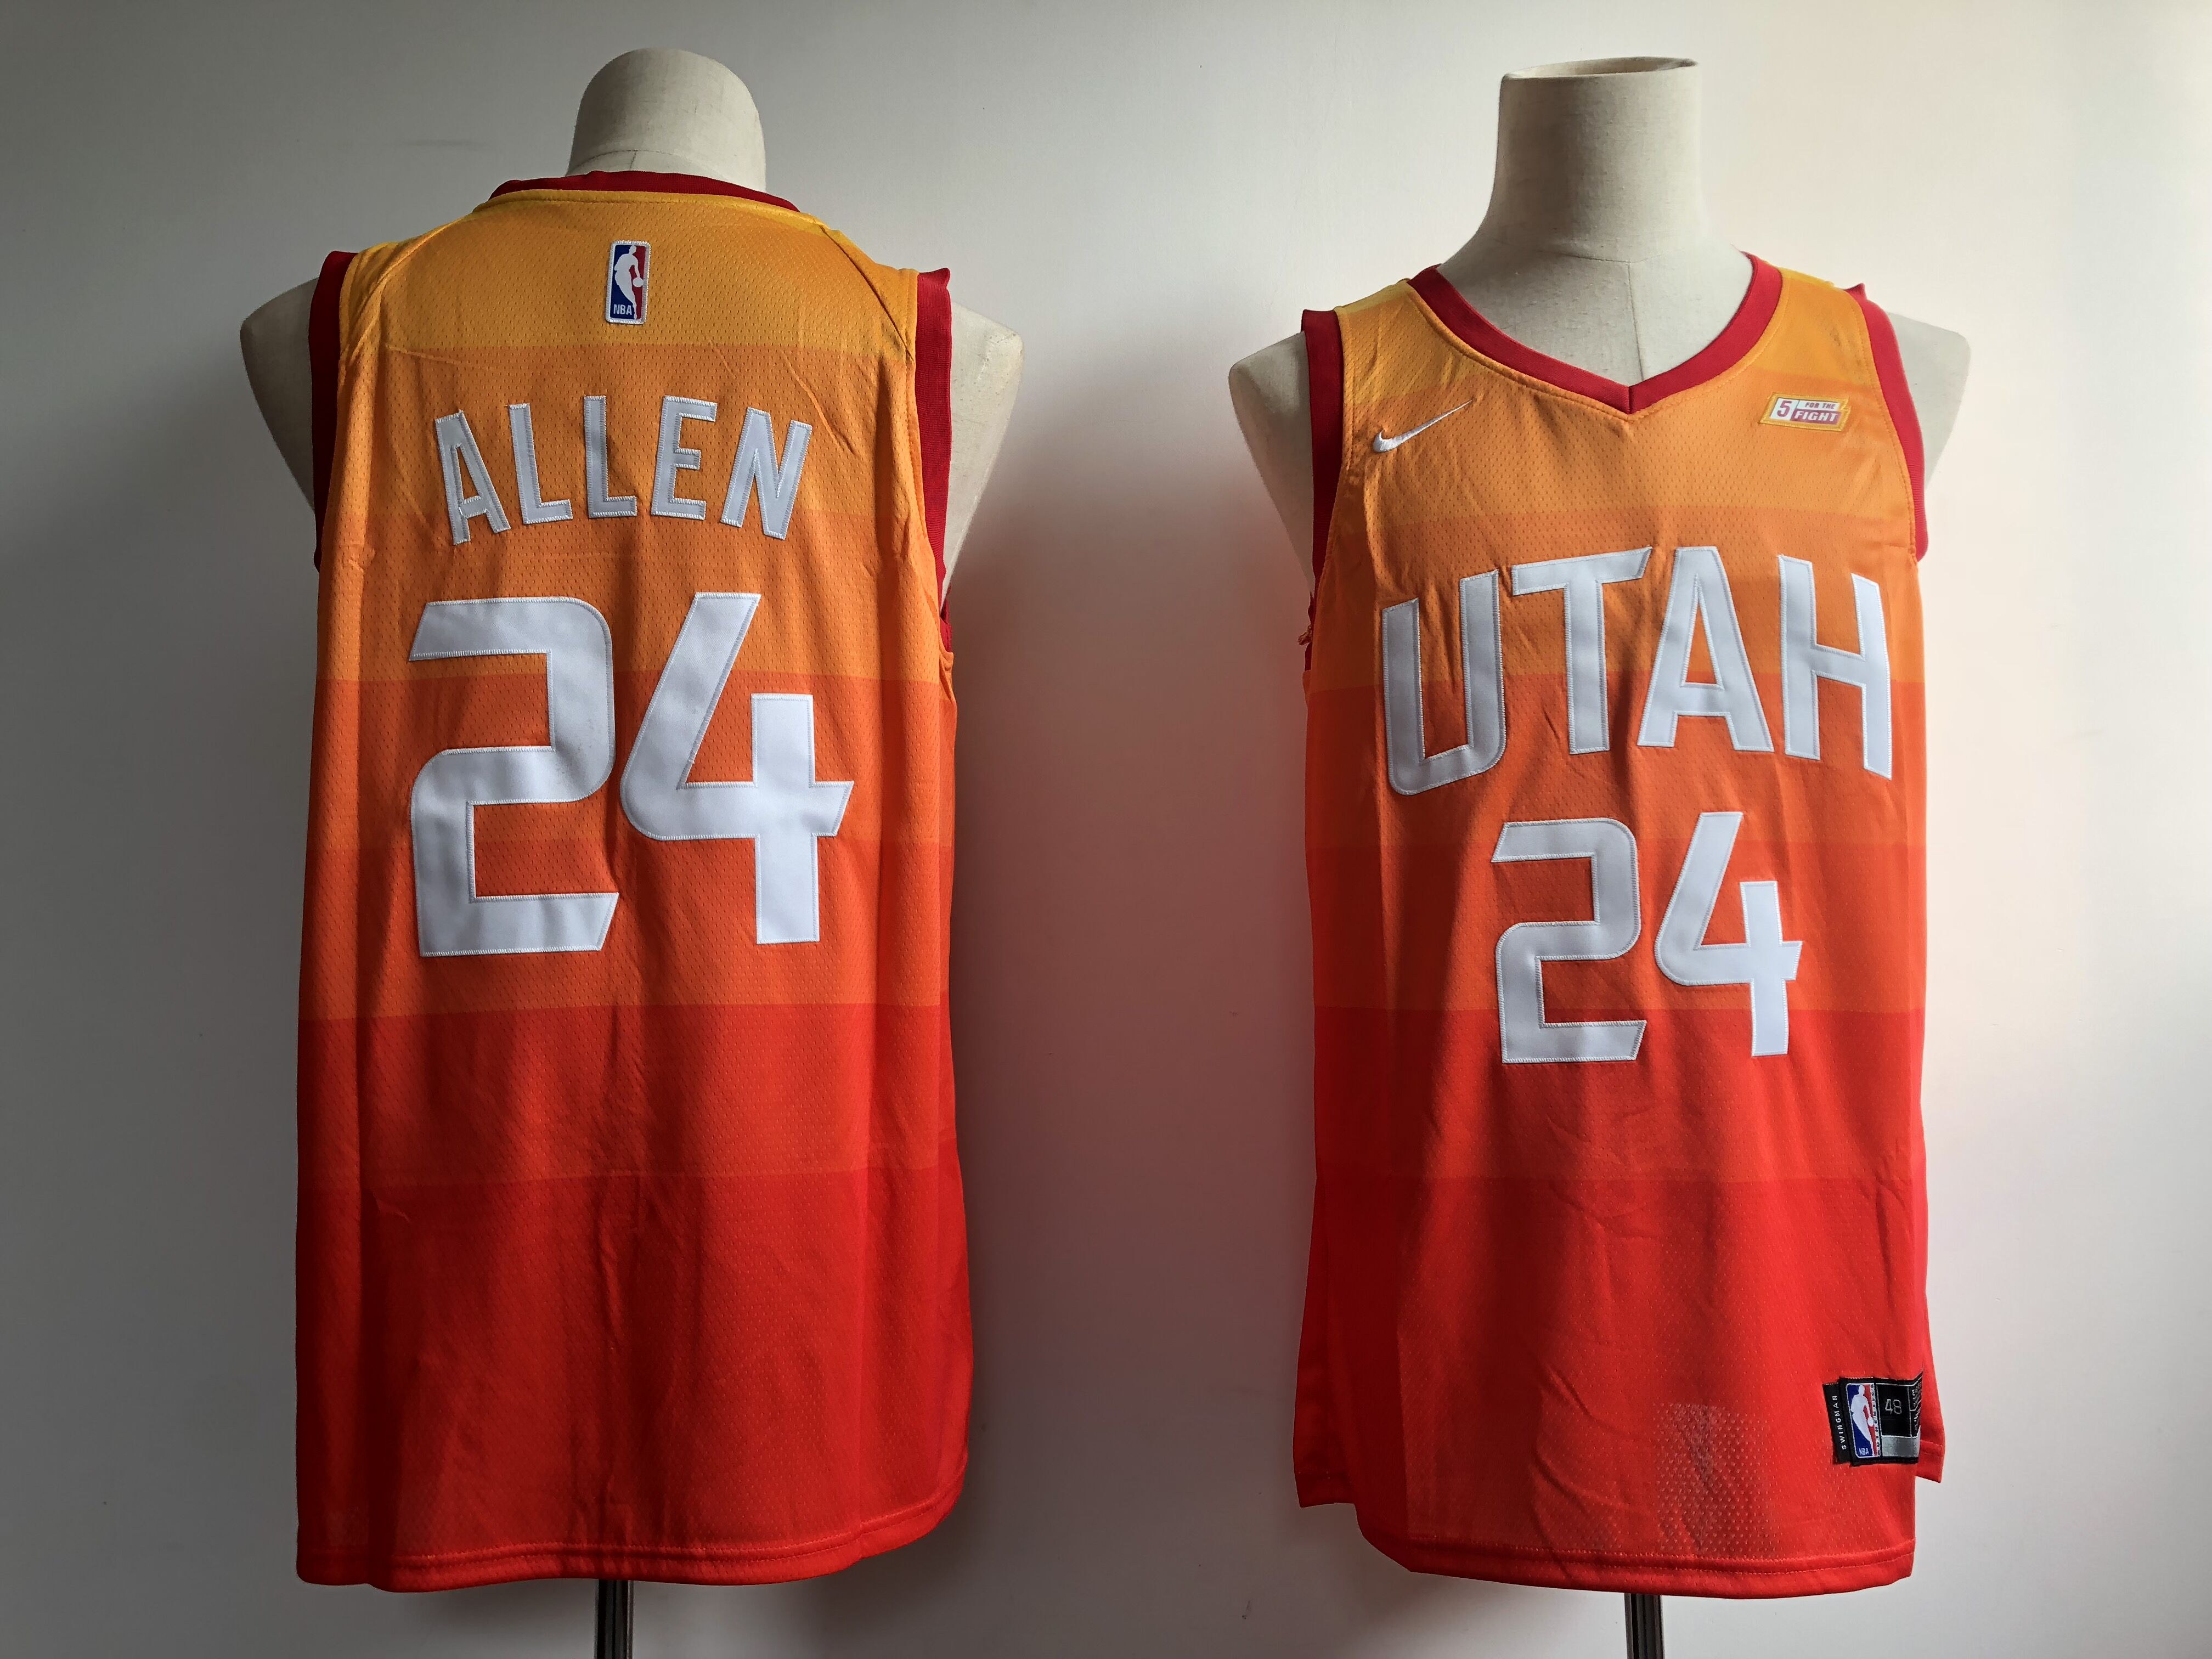 Men Utah Jazz 24 Allen Orange City Edition Game Nike NBA Jerseys